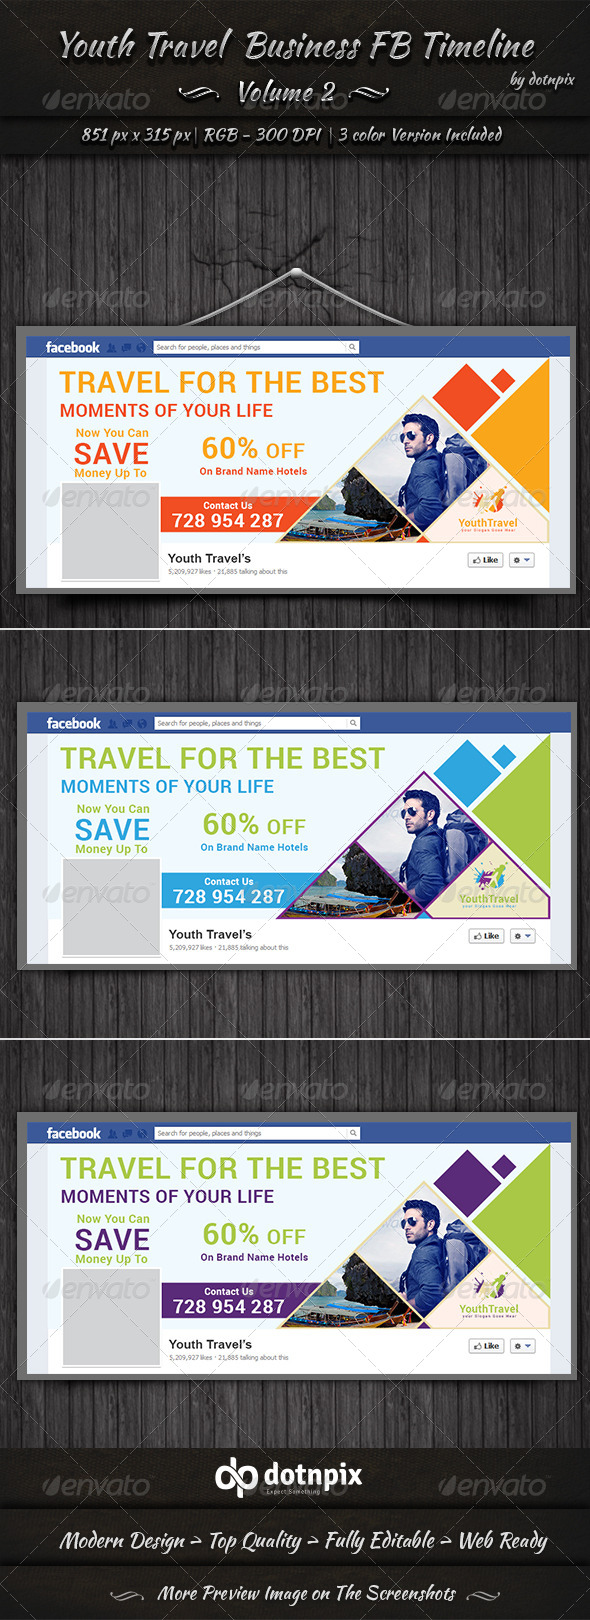 GraphicRiver Youth Travel Business FB Timeline Volume 2 6912774